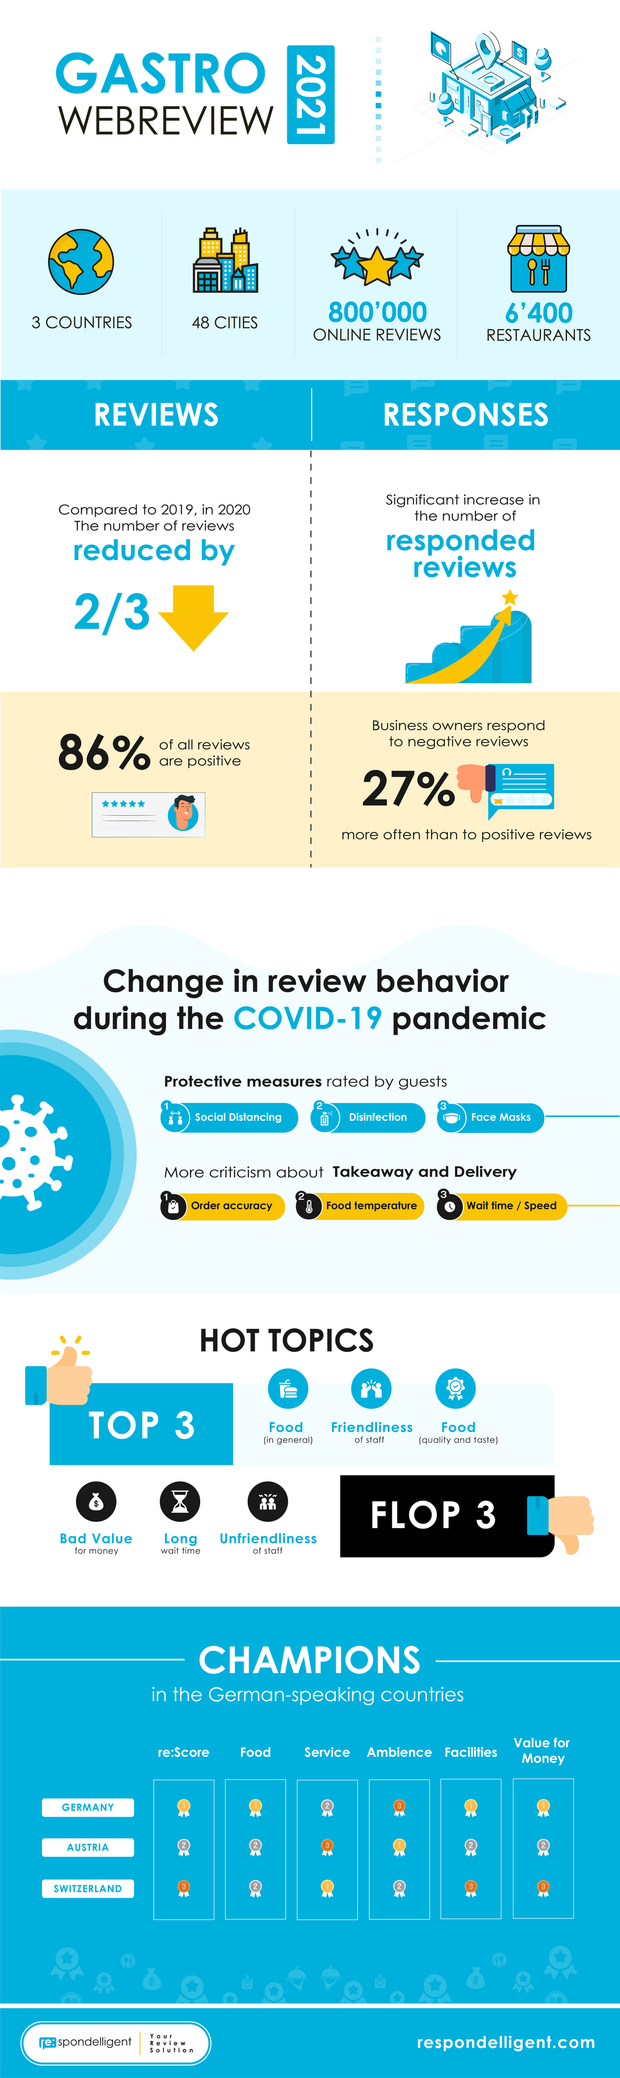 Gastro WebReview 2021: Key Facts in One Infographic